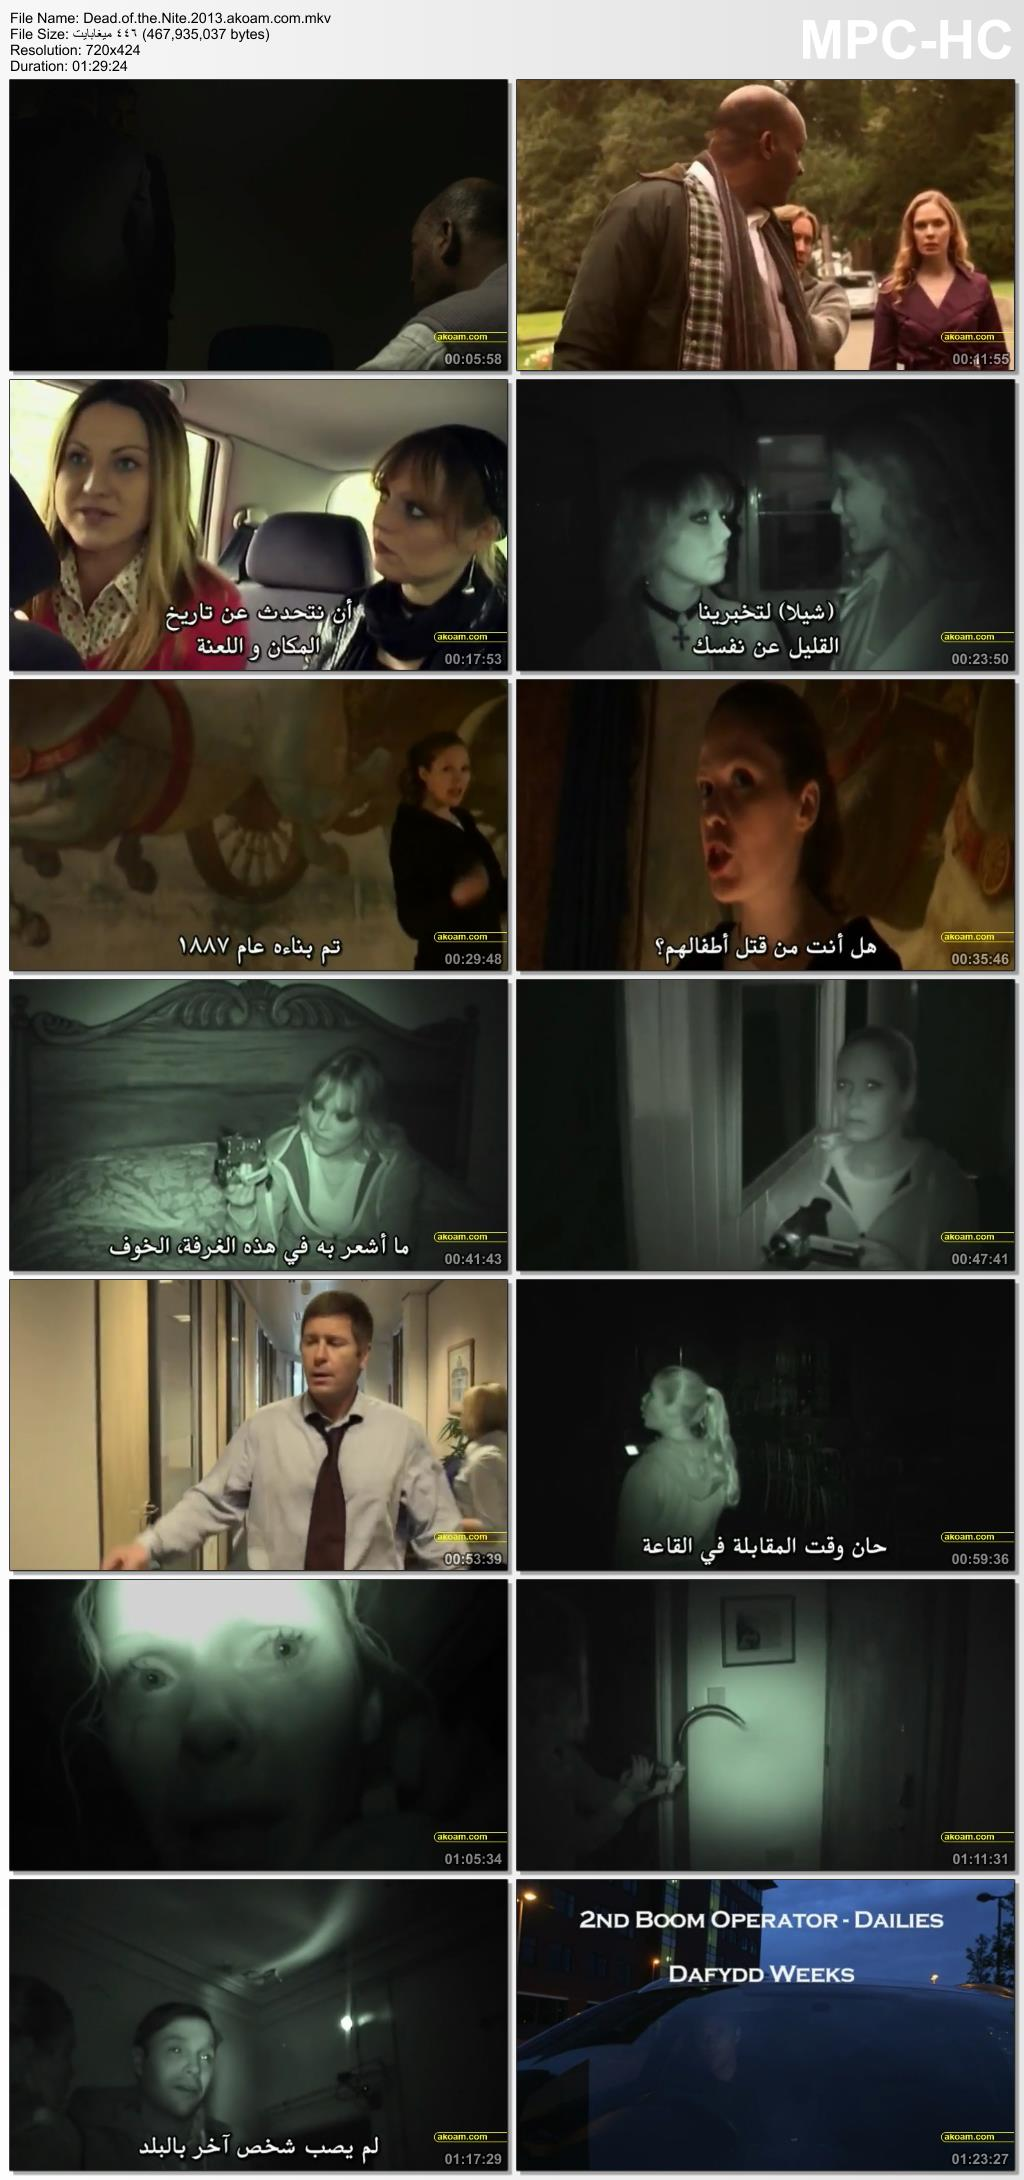 الرعب,Dead of the Nite,قتلي نيت,Dead of the Nite 2013